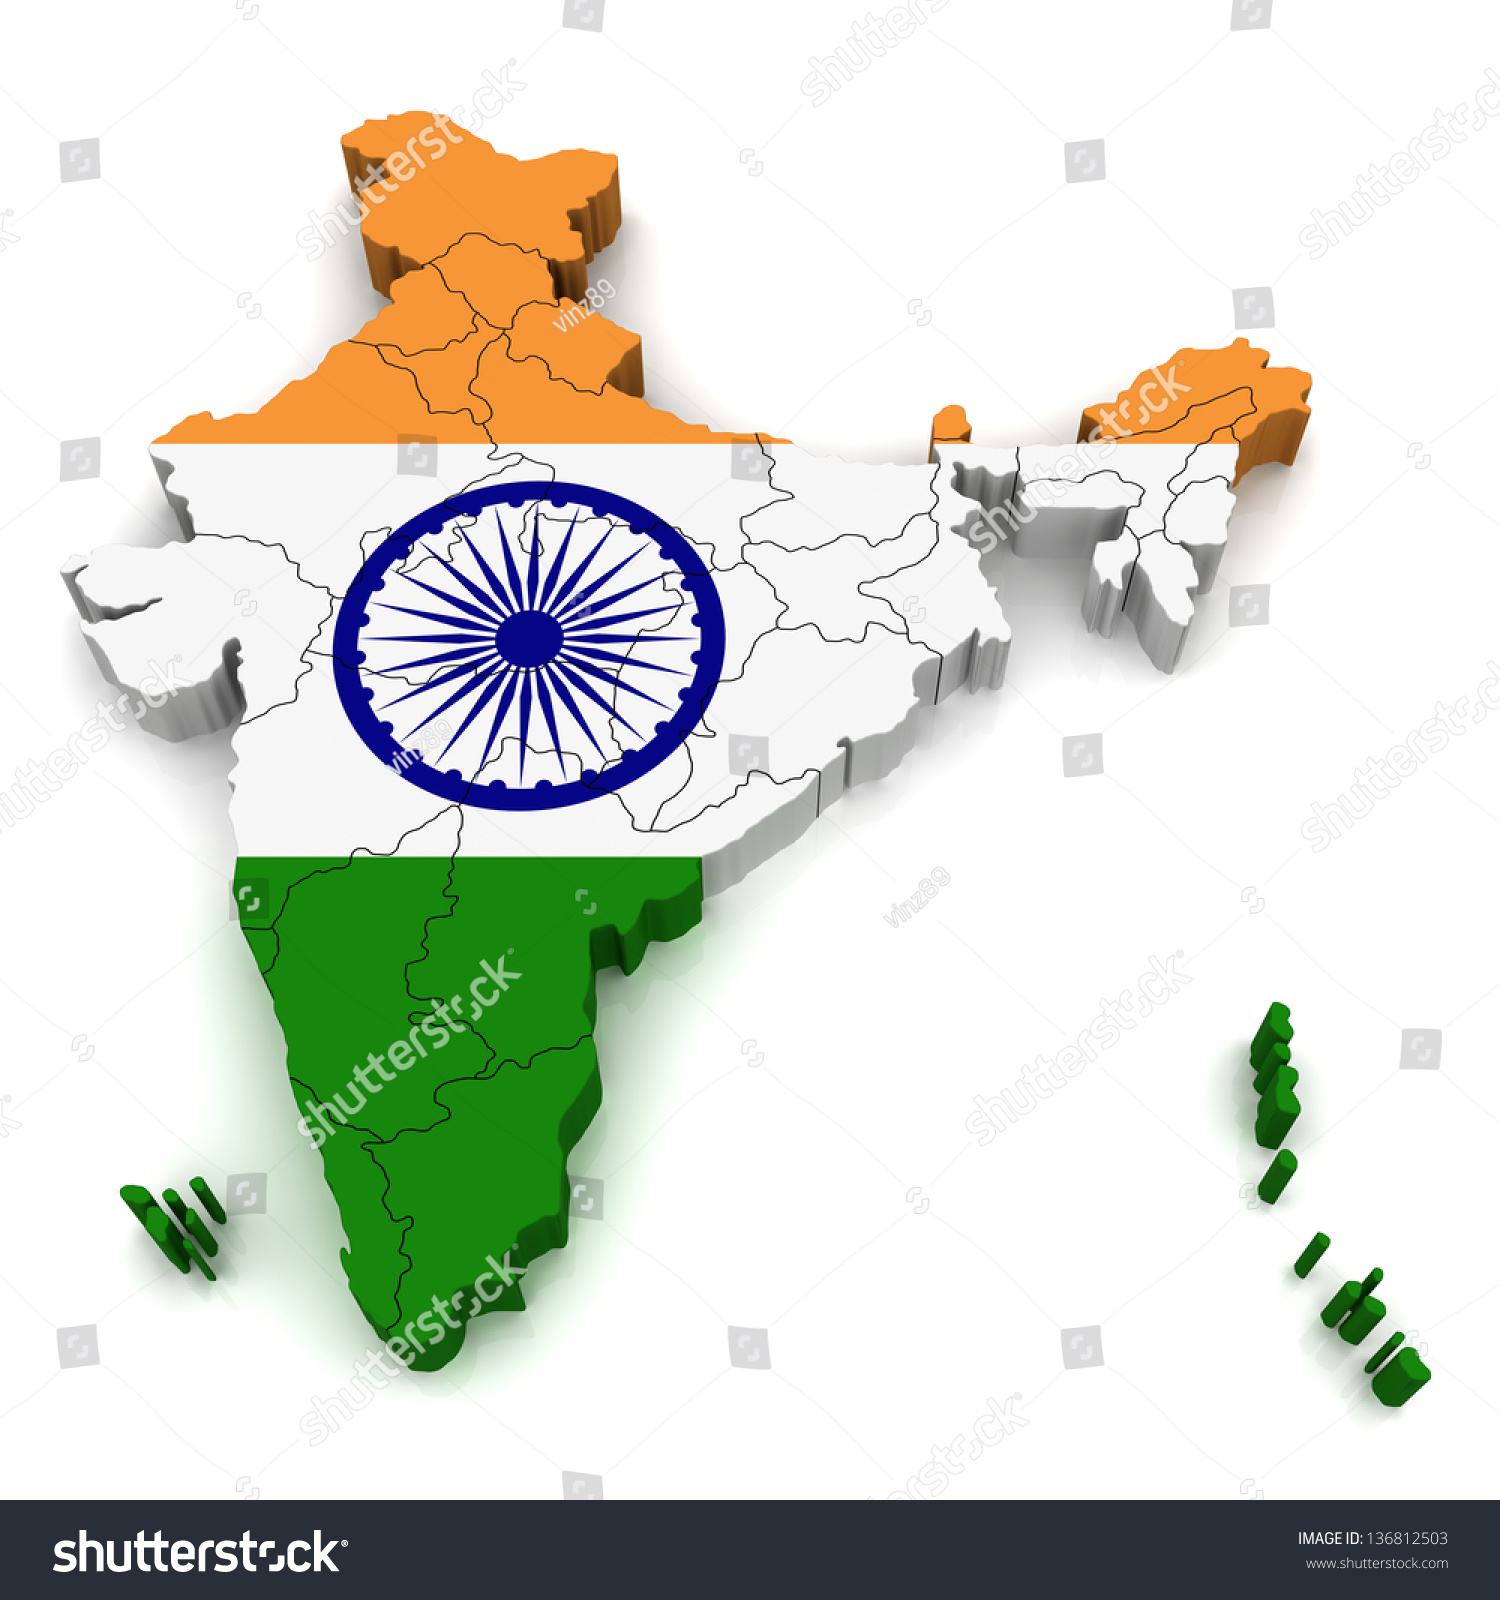 3d Map Of India Stock Photo 136812503 Shutterstock